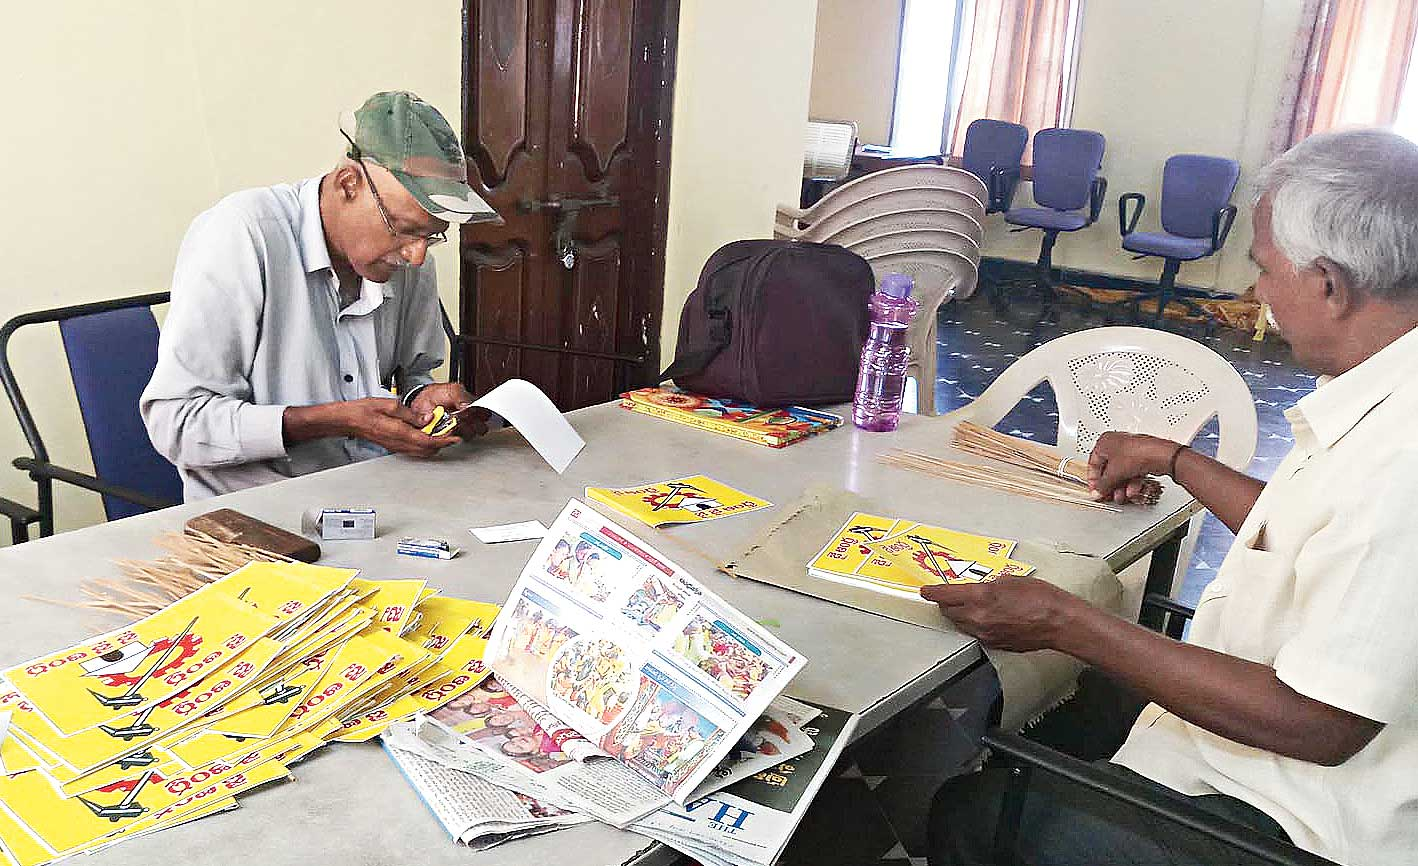 Prasad (in cap) and Subbarao make flags at a TDP office in Mangalagiri.